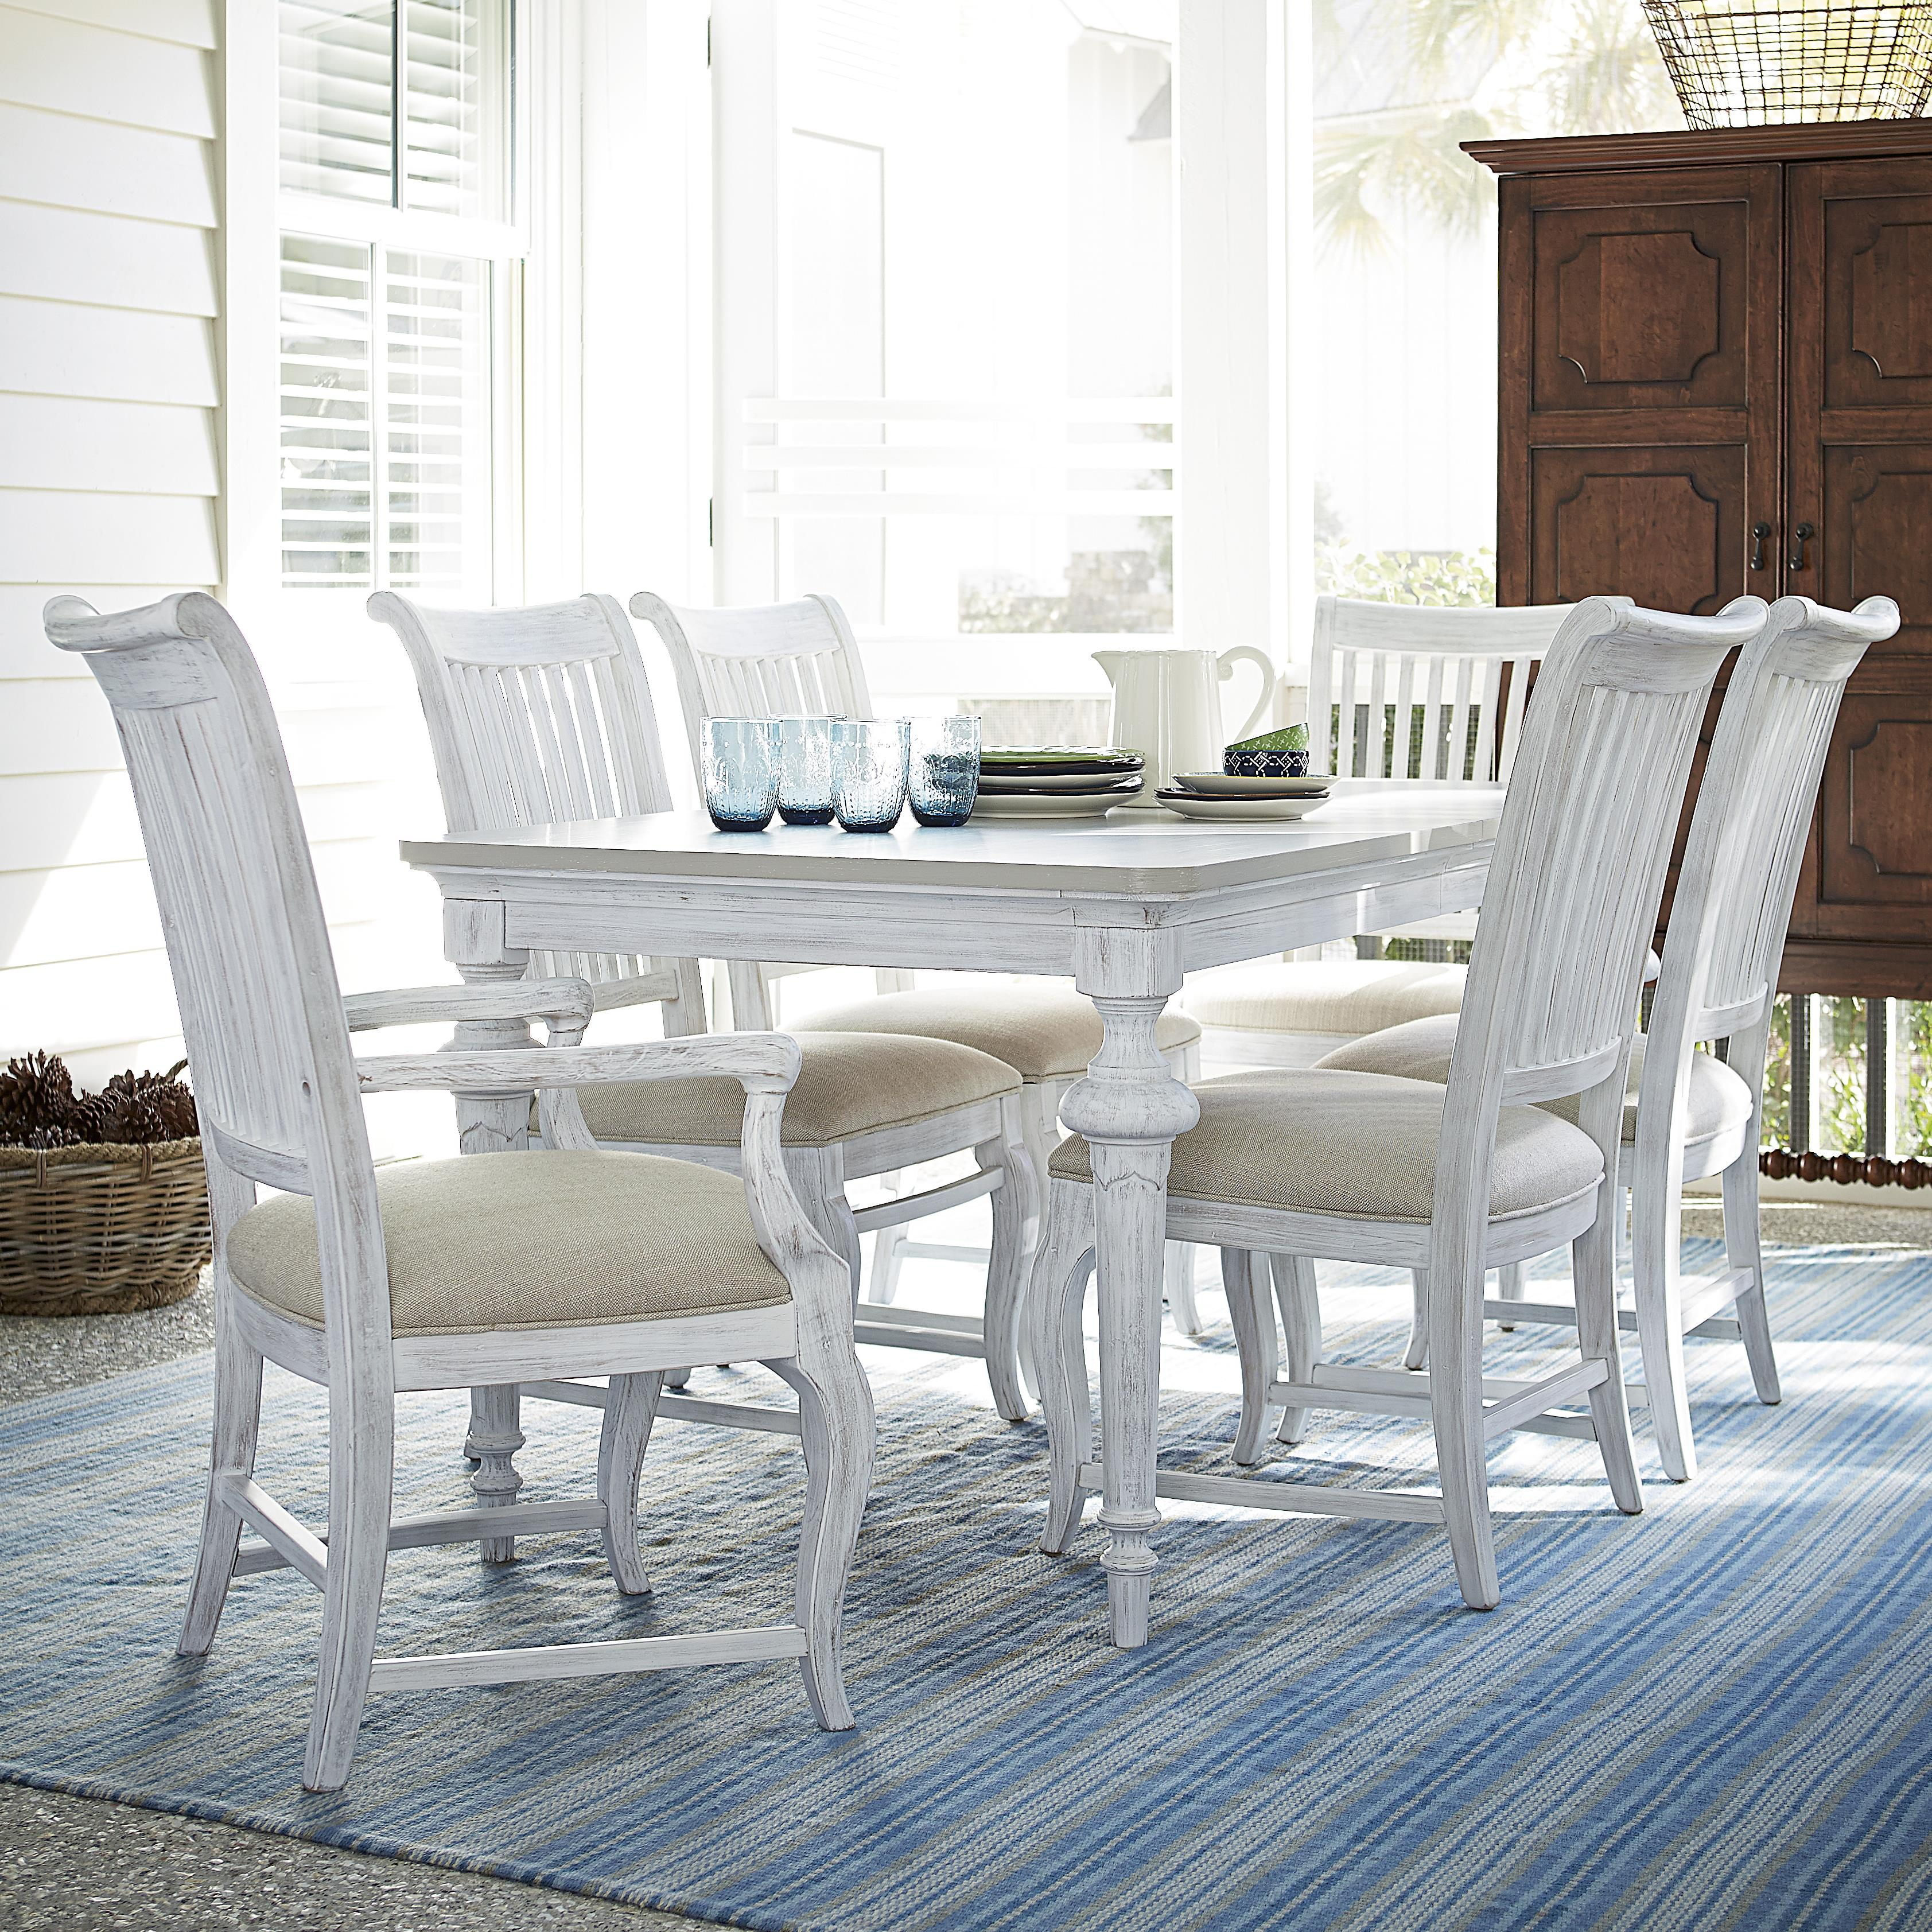 Paula Deen by Universal Dogwood 7 Piece Dining Set - Item Number: 597B653+2x35-RTA+4x34-RTA